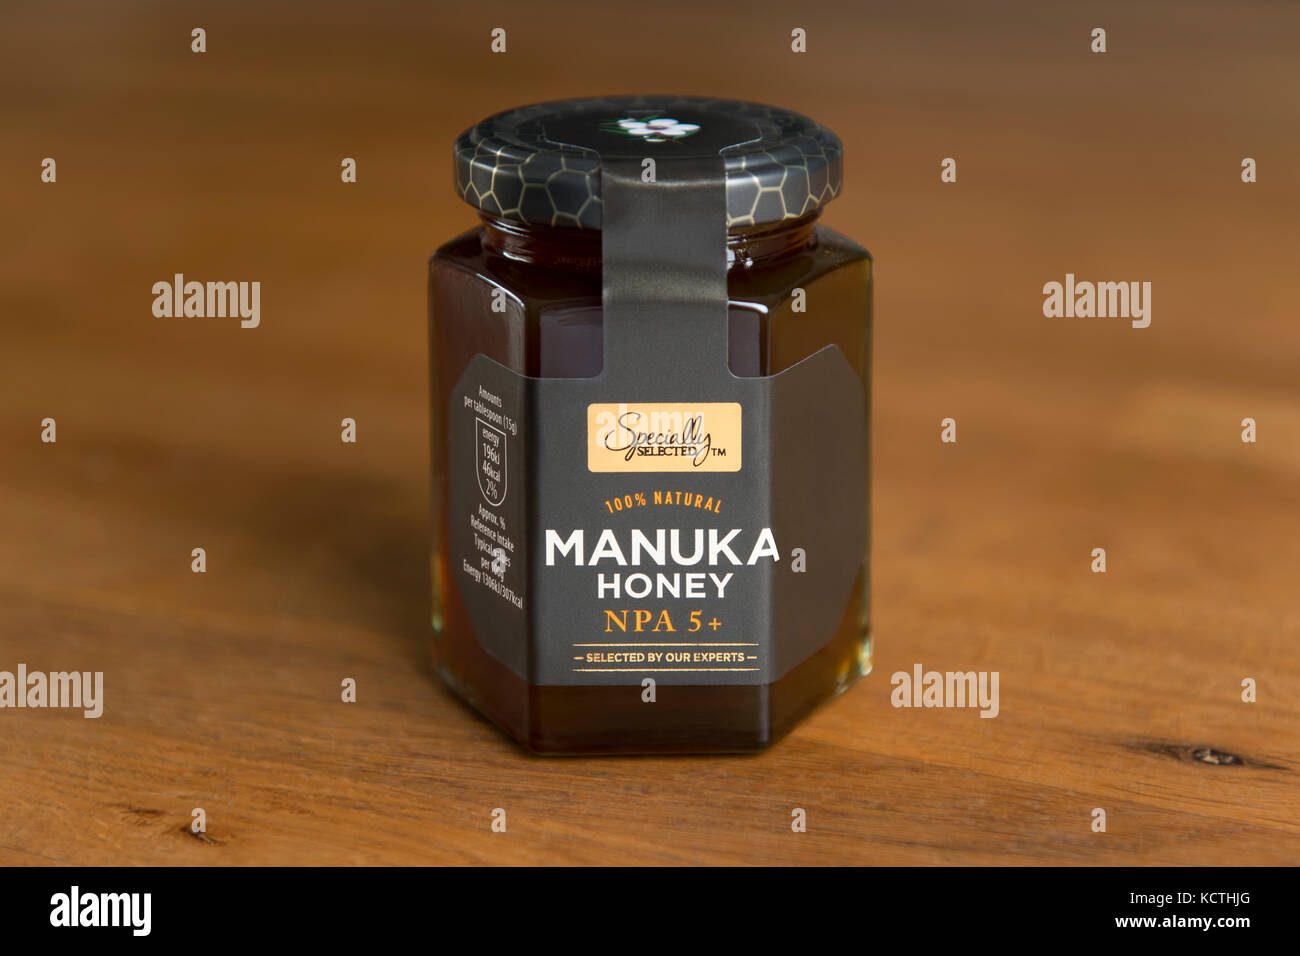 A jar of Aldi Specially Selected Manuka honey is shot against a wooden background (Editorial use only). - Stock Image